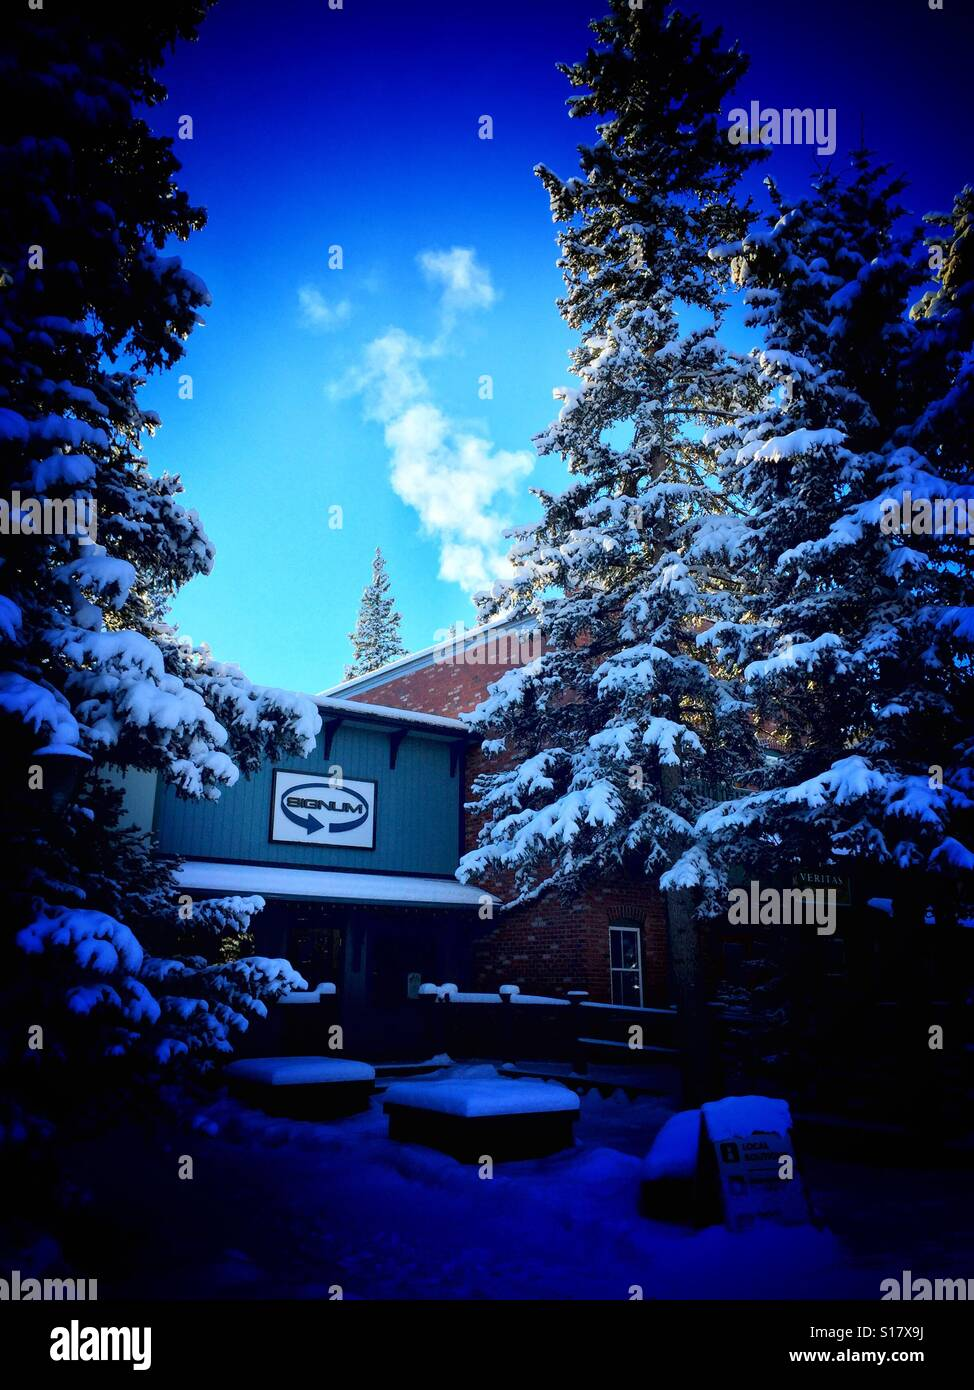 Bragg creek strip mall surrounded by snow covered evergreens with exhaust from one of the businesses - Stock Image